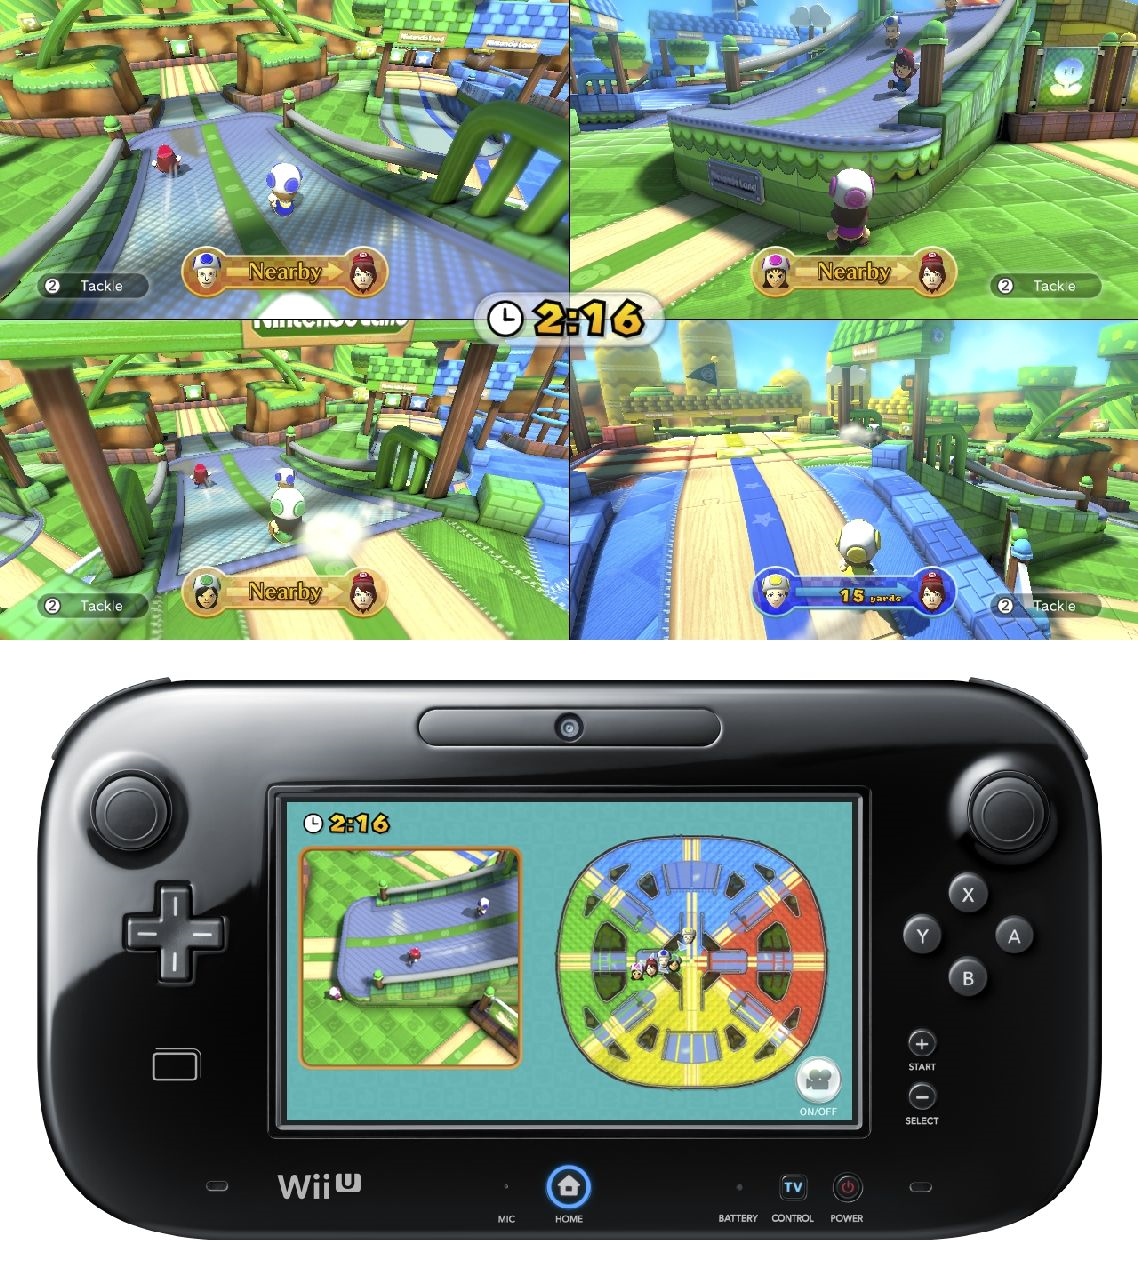 Wii And Wii U Games : Wii u games you should play lists